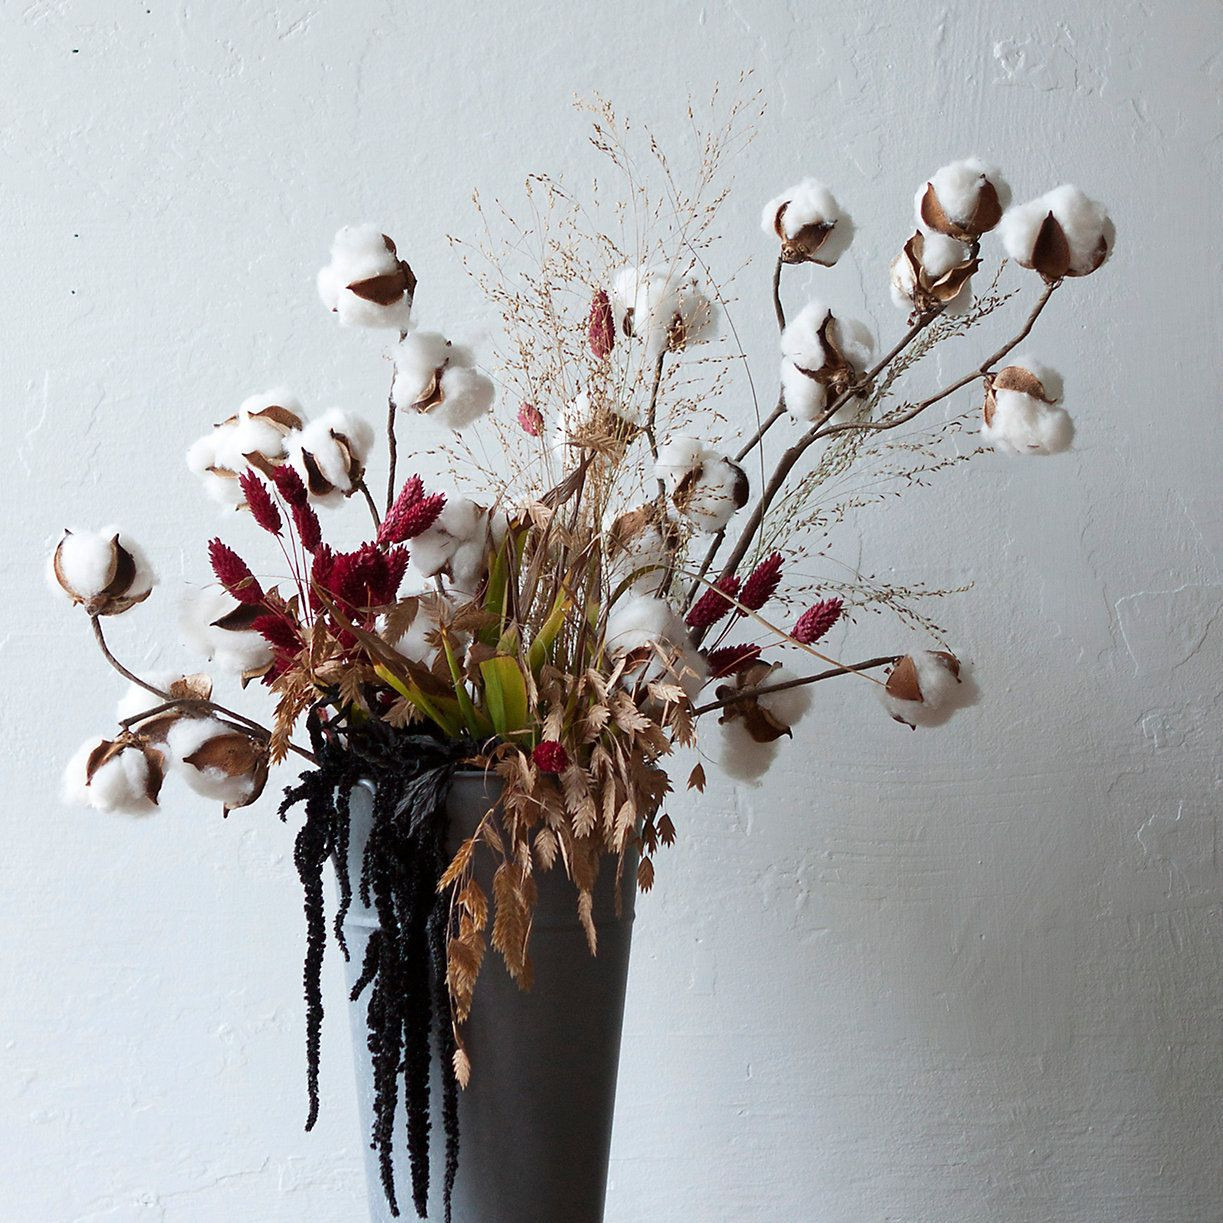 24 Fabulous Cherokee Wedding Vase 2021 free download cherokee wedding vase of https georgiapto org diy built in entertainment center plans 2 17945 inside diy cotton stems dried cotton stem floral pinterest of diy cotton stems